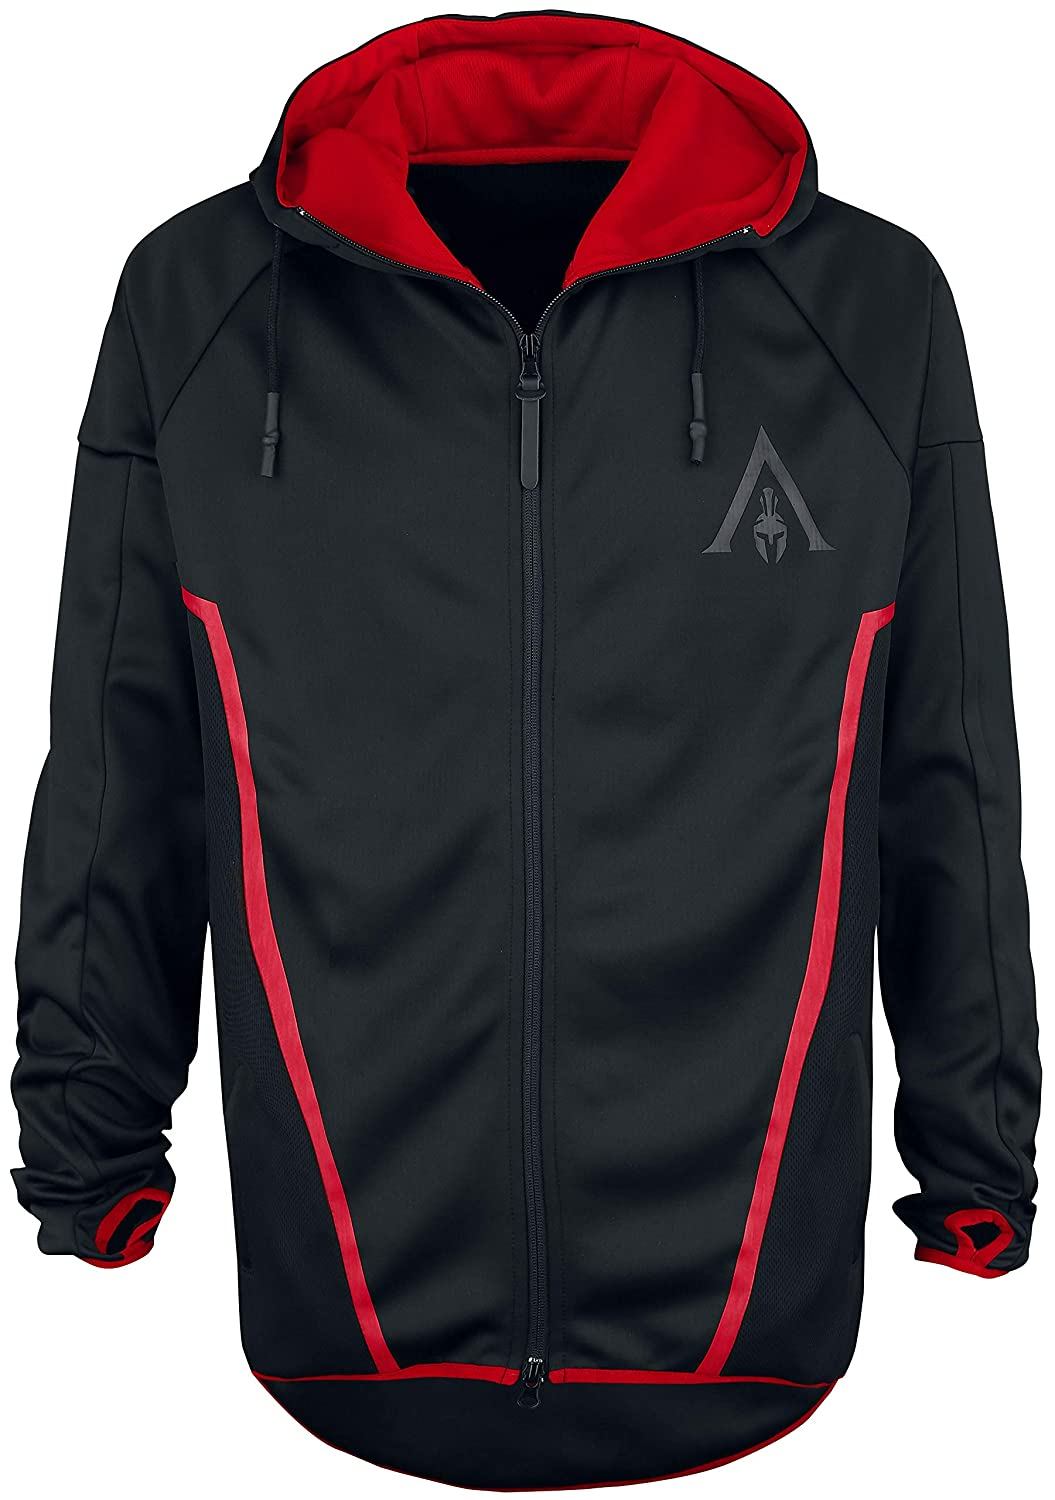 Assassin's Creed Odyssey - Technical Hexagonal Sudadera Capucha con Cremallera Negro